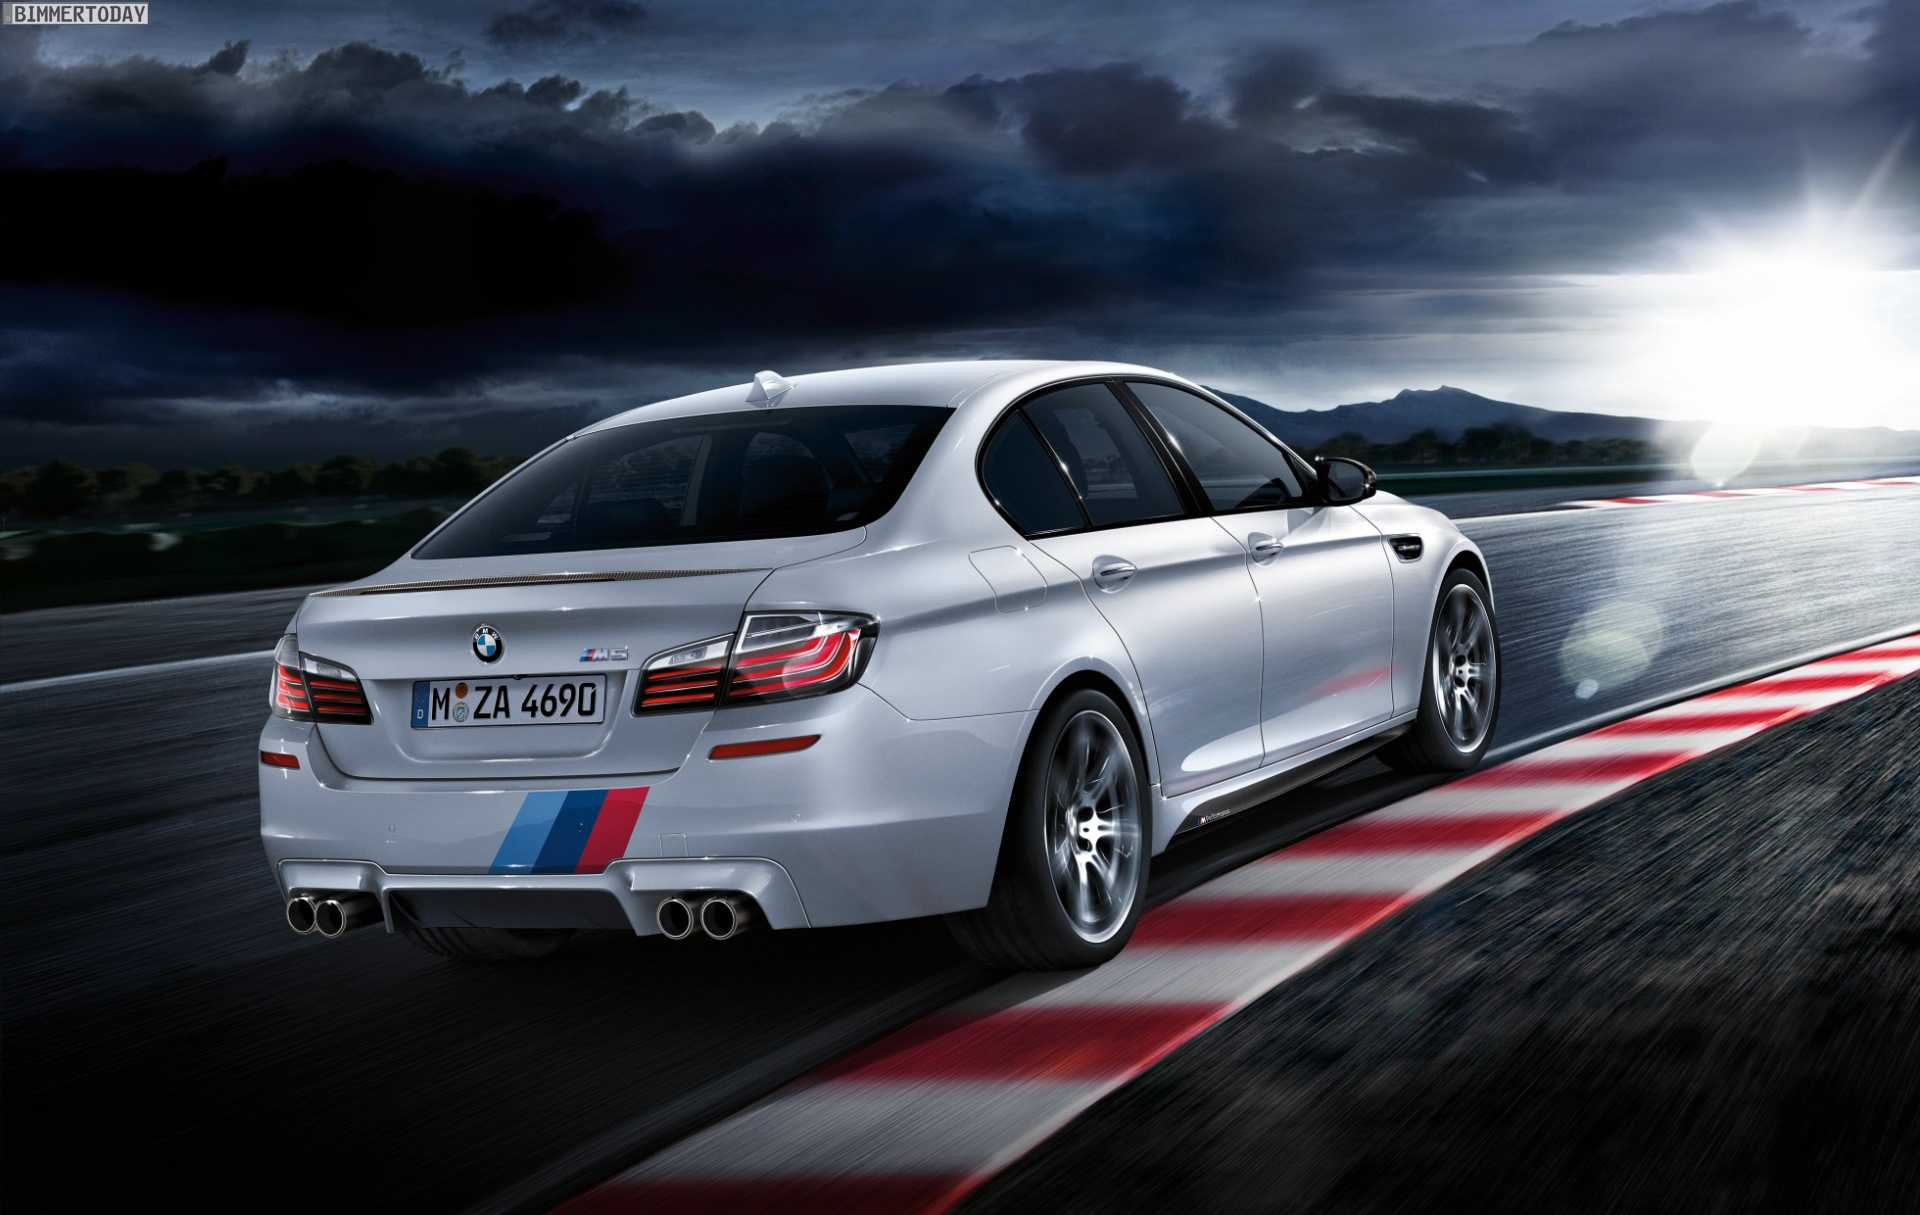 All BMW M Cars Will Become Hybrids in Future